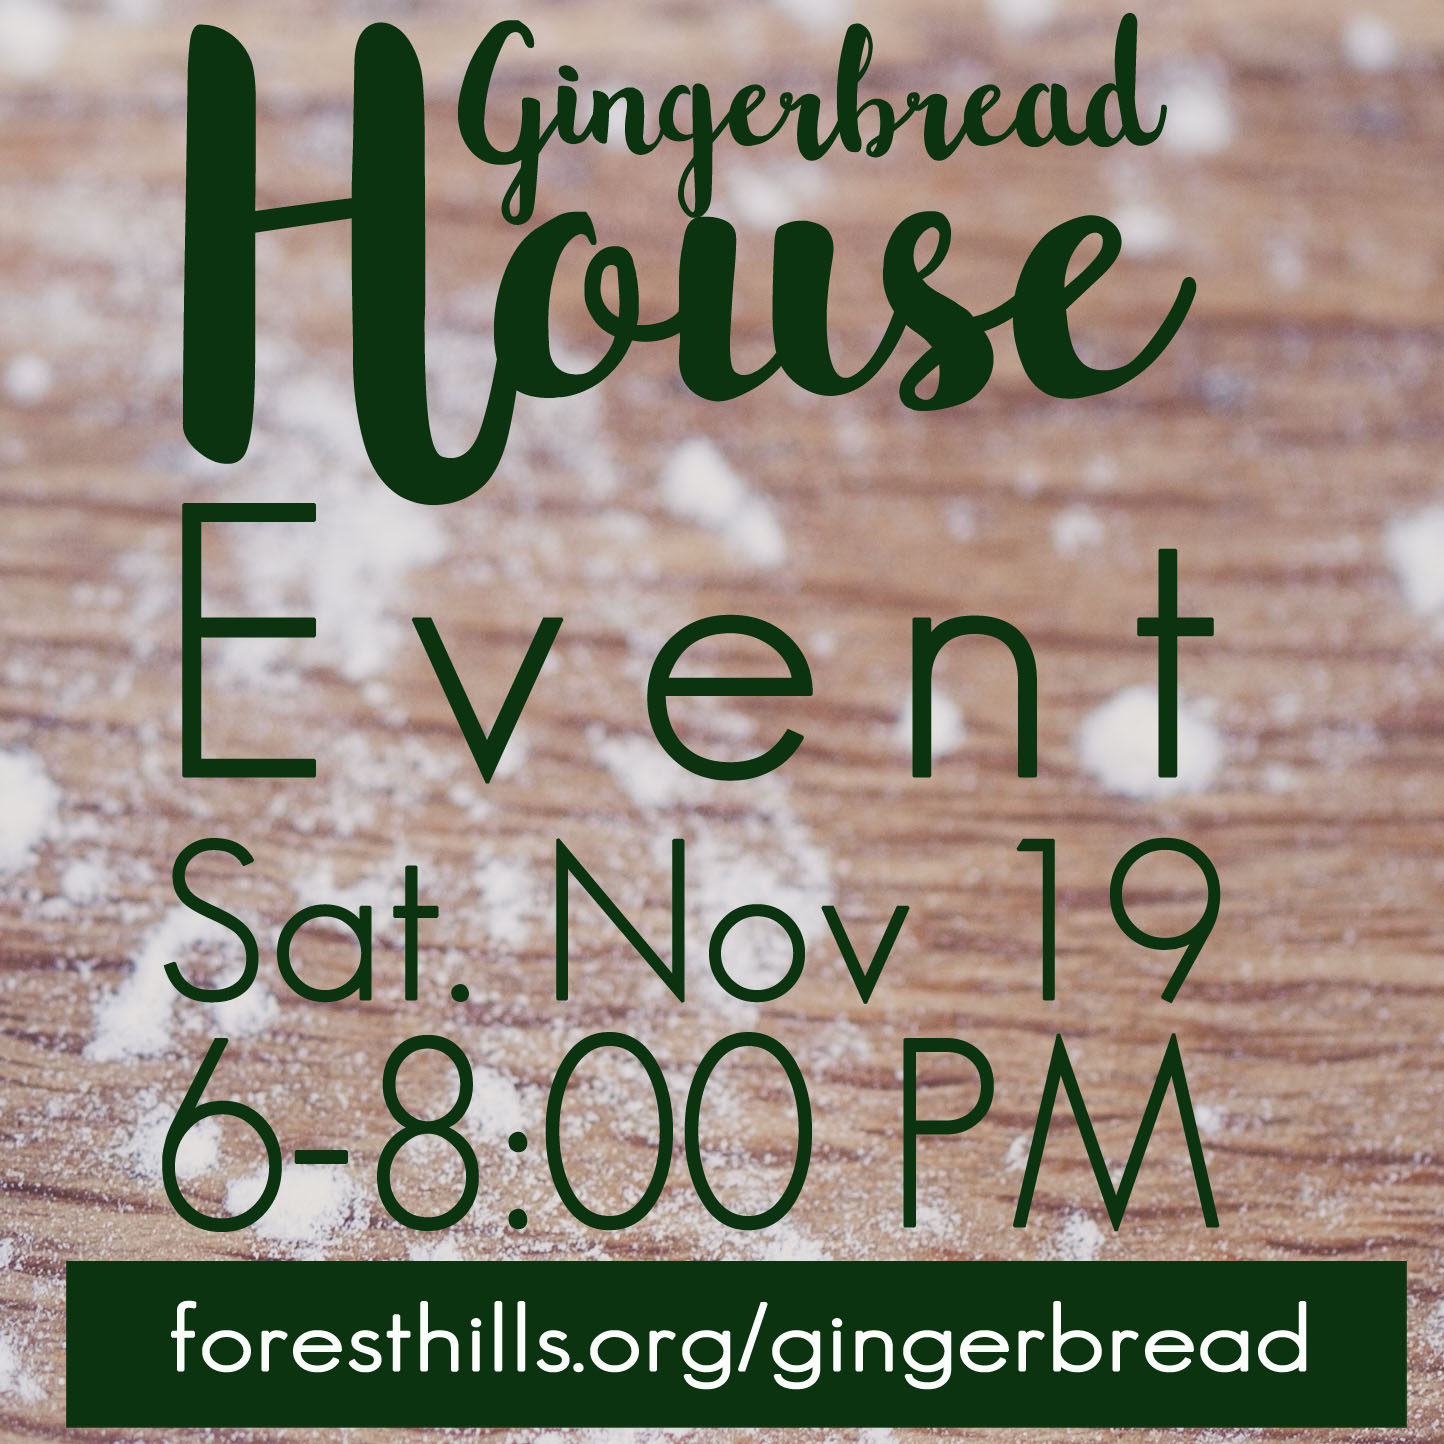 Please join us for our annual gingerbread house event on Saturday, November 19, from 6:00-8:00 pm. Each family will need to bring 1-2 covered dishes, your own decorating candy, $2 for icing, and a wooden house. If you need a wooden house, some are available. Get more details and sign up at  foresthills.org/gingerbread.